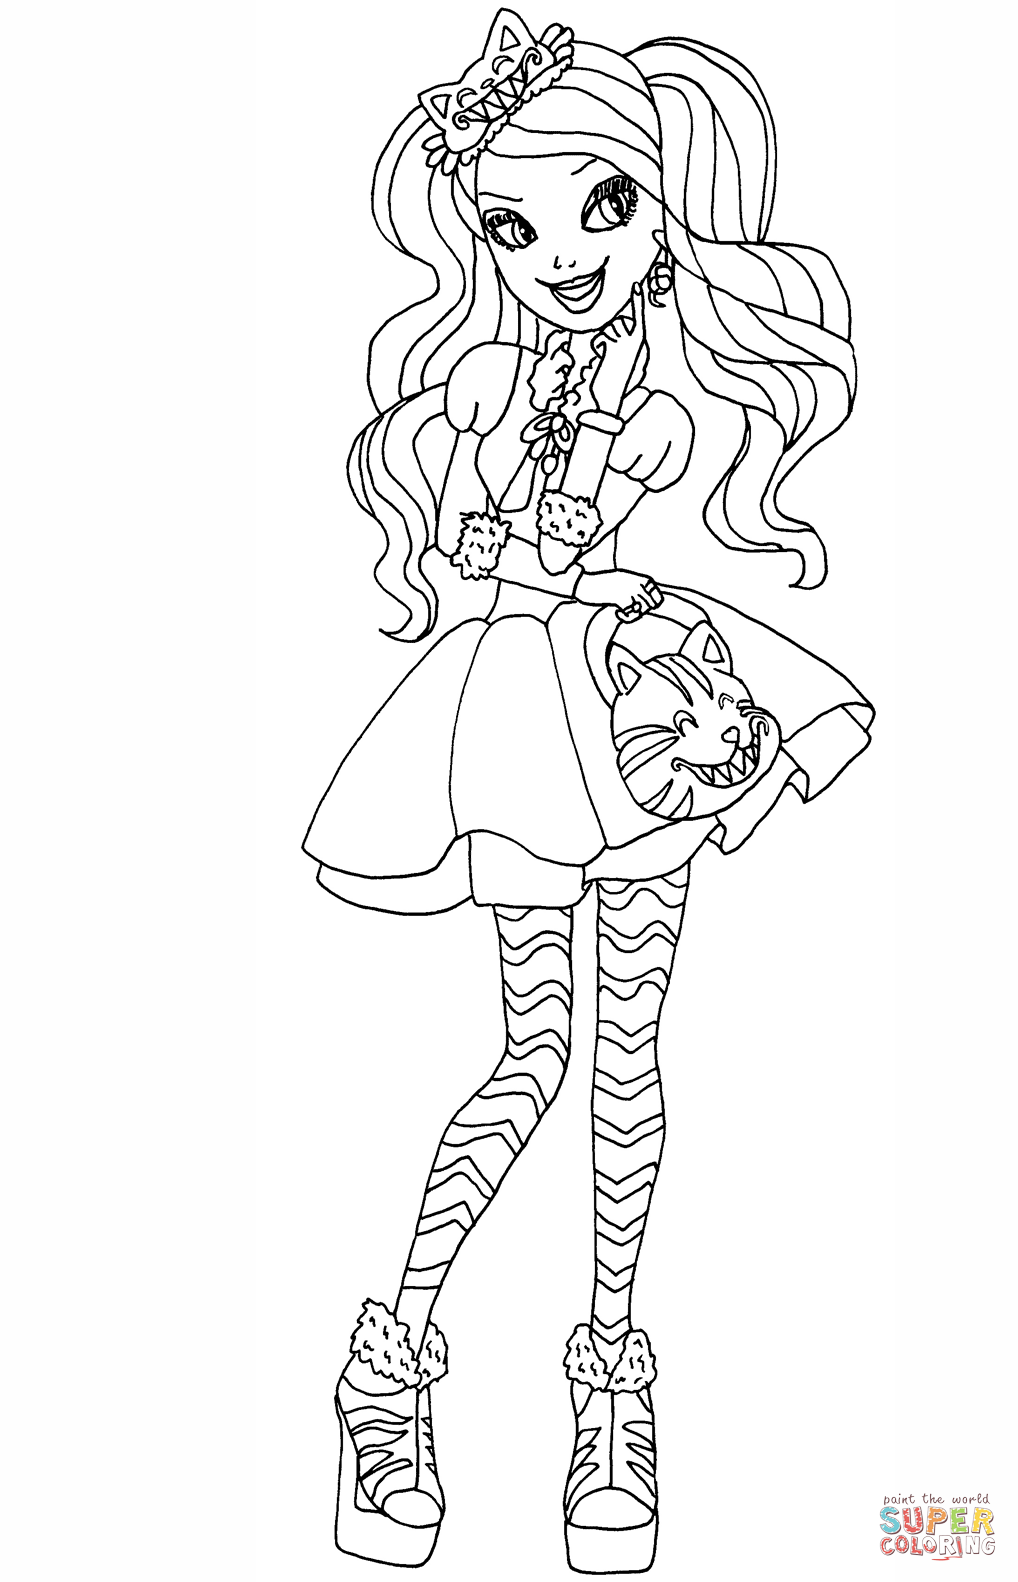 Monster High Clawdeen Ausmalbilder : Resultado De Imagem Para Ever After High Ginger Para Colorir Todas